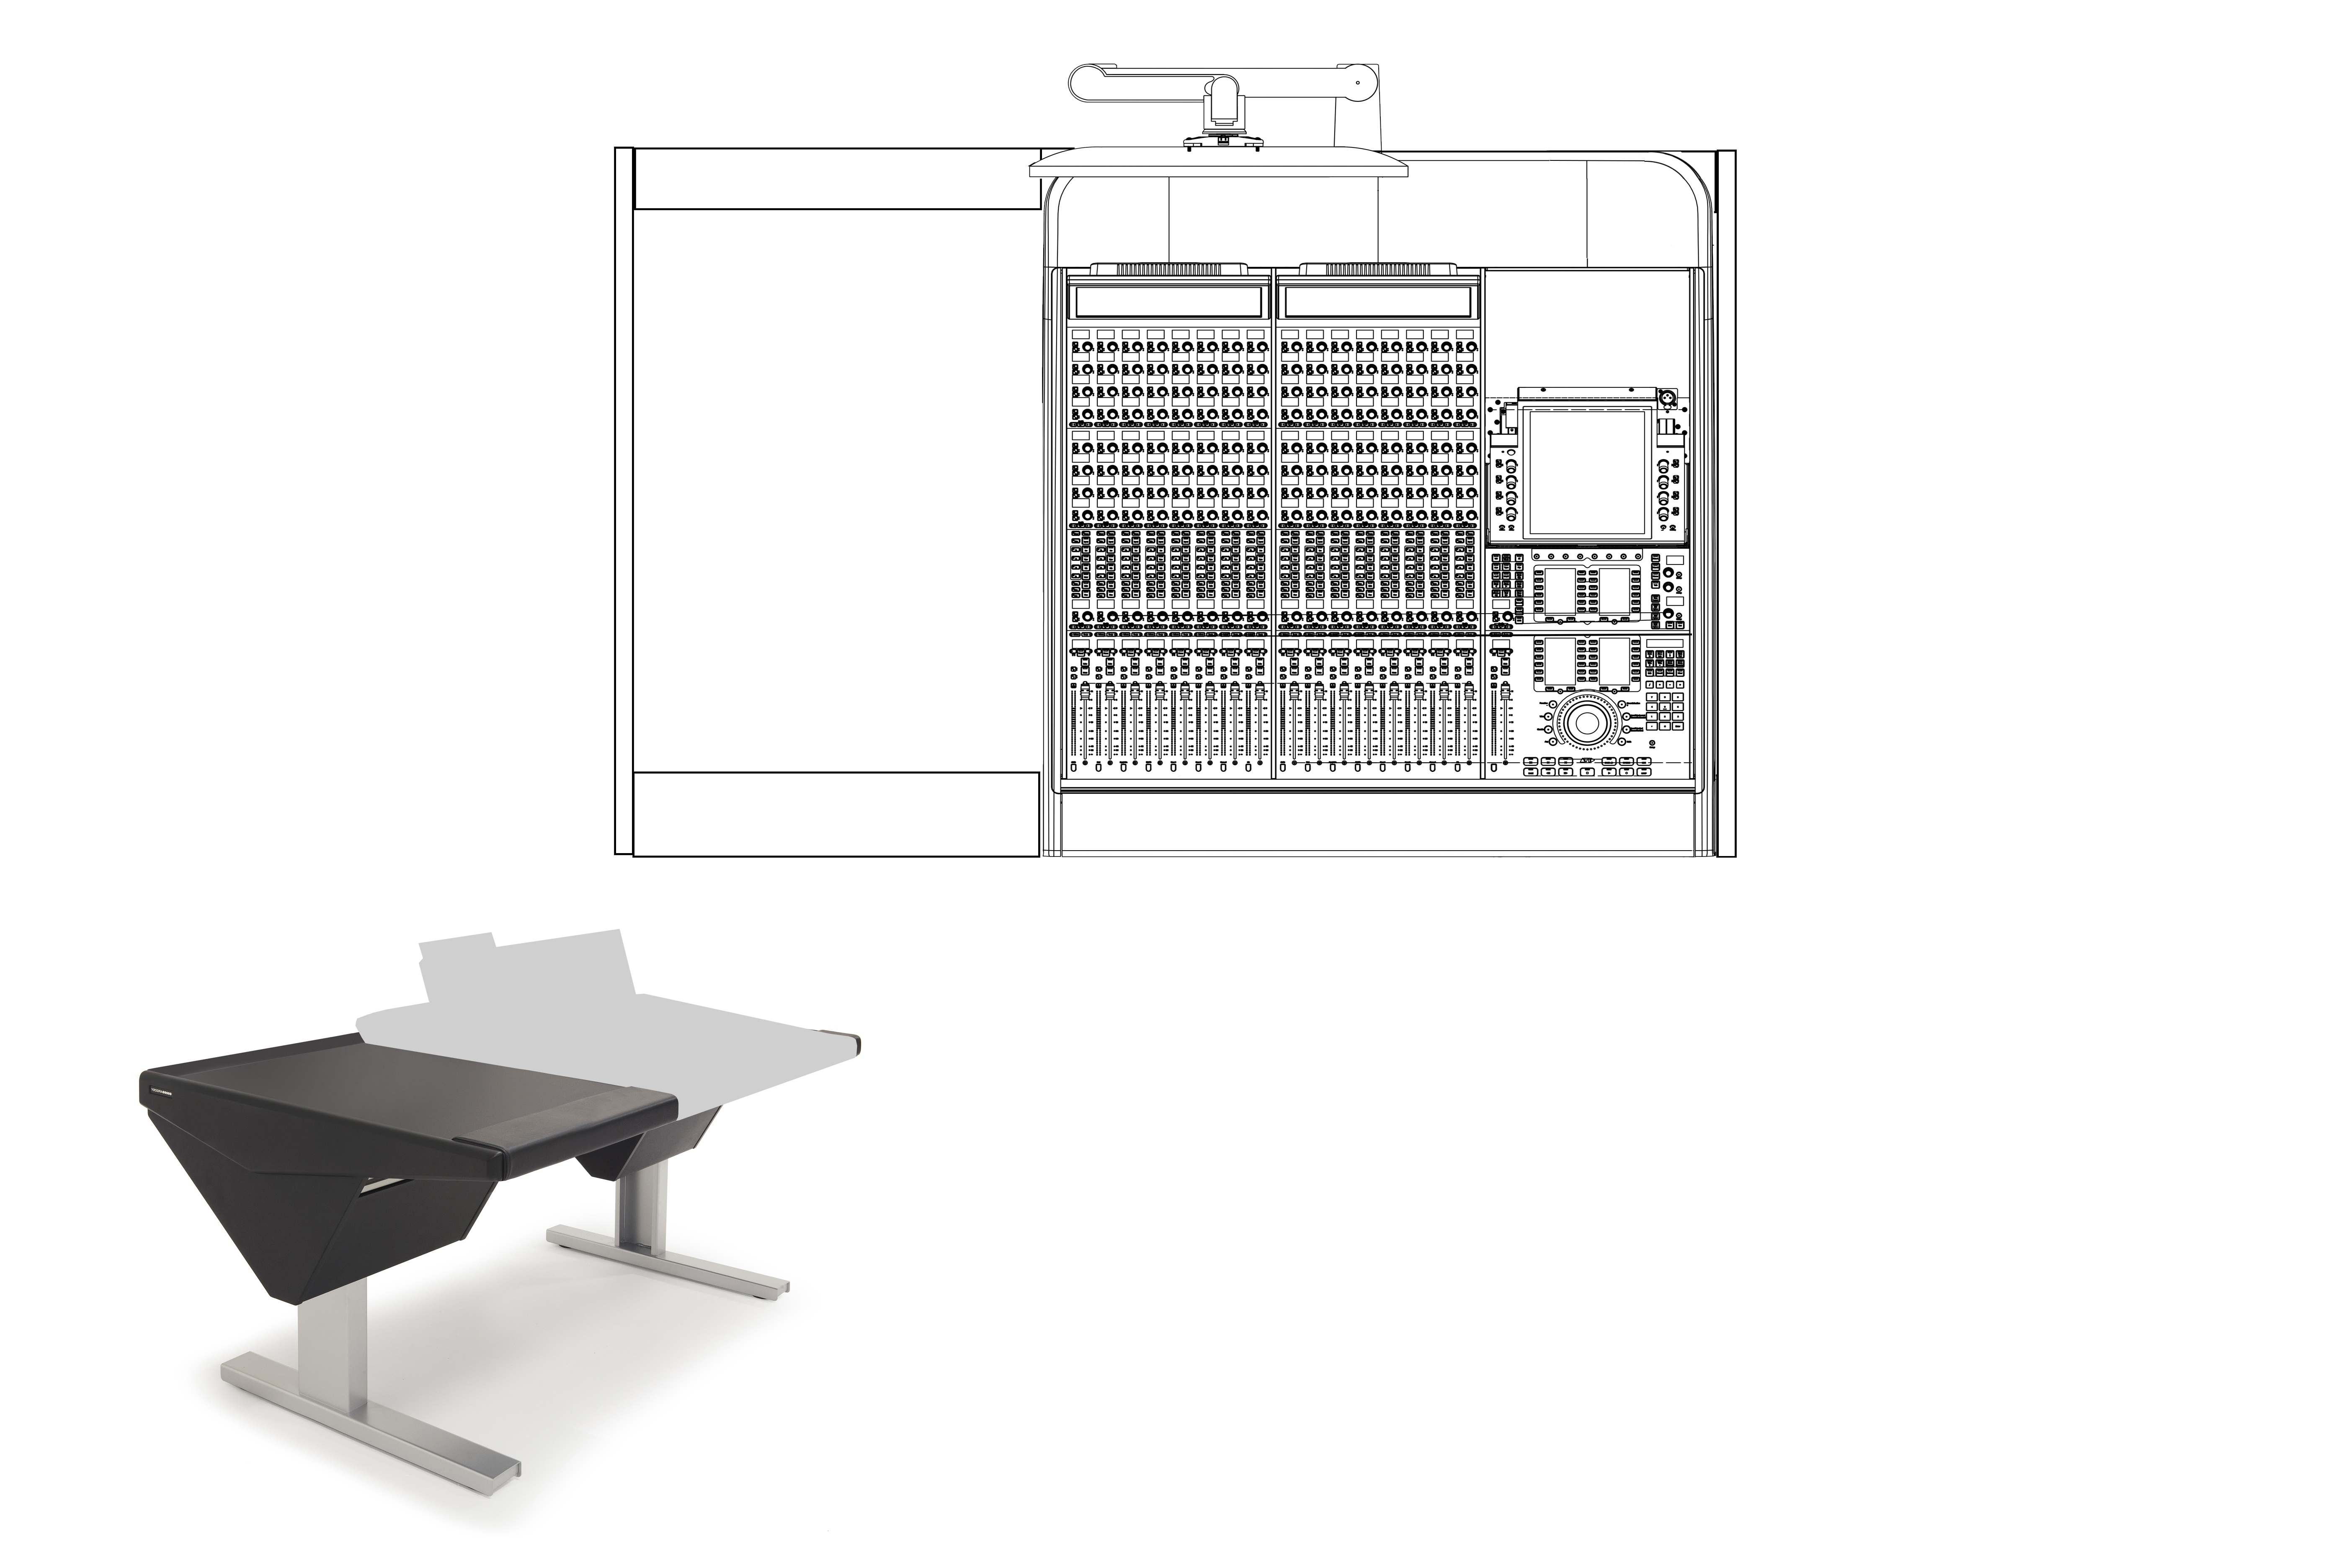 16 Fader System with Desk (L)